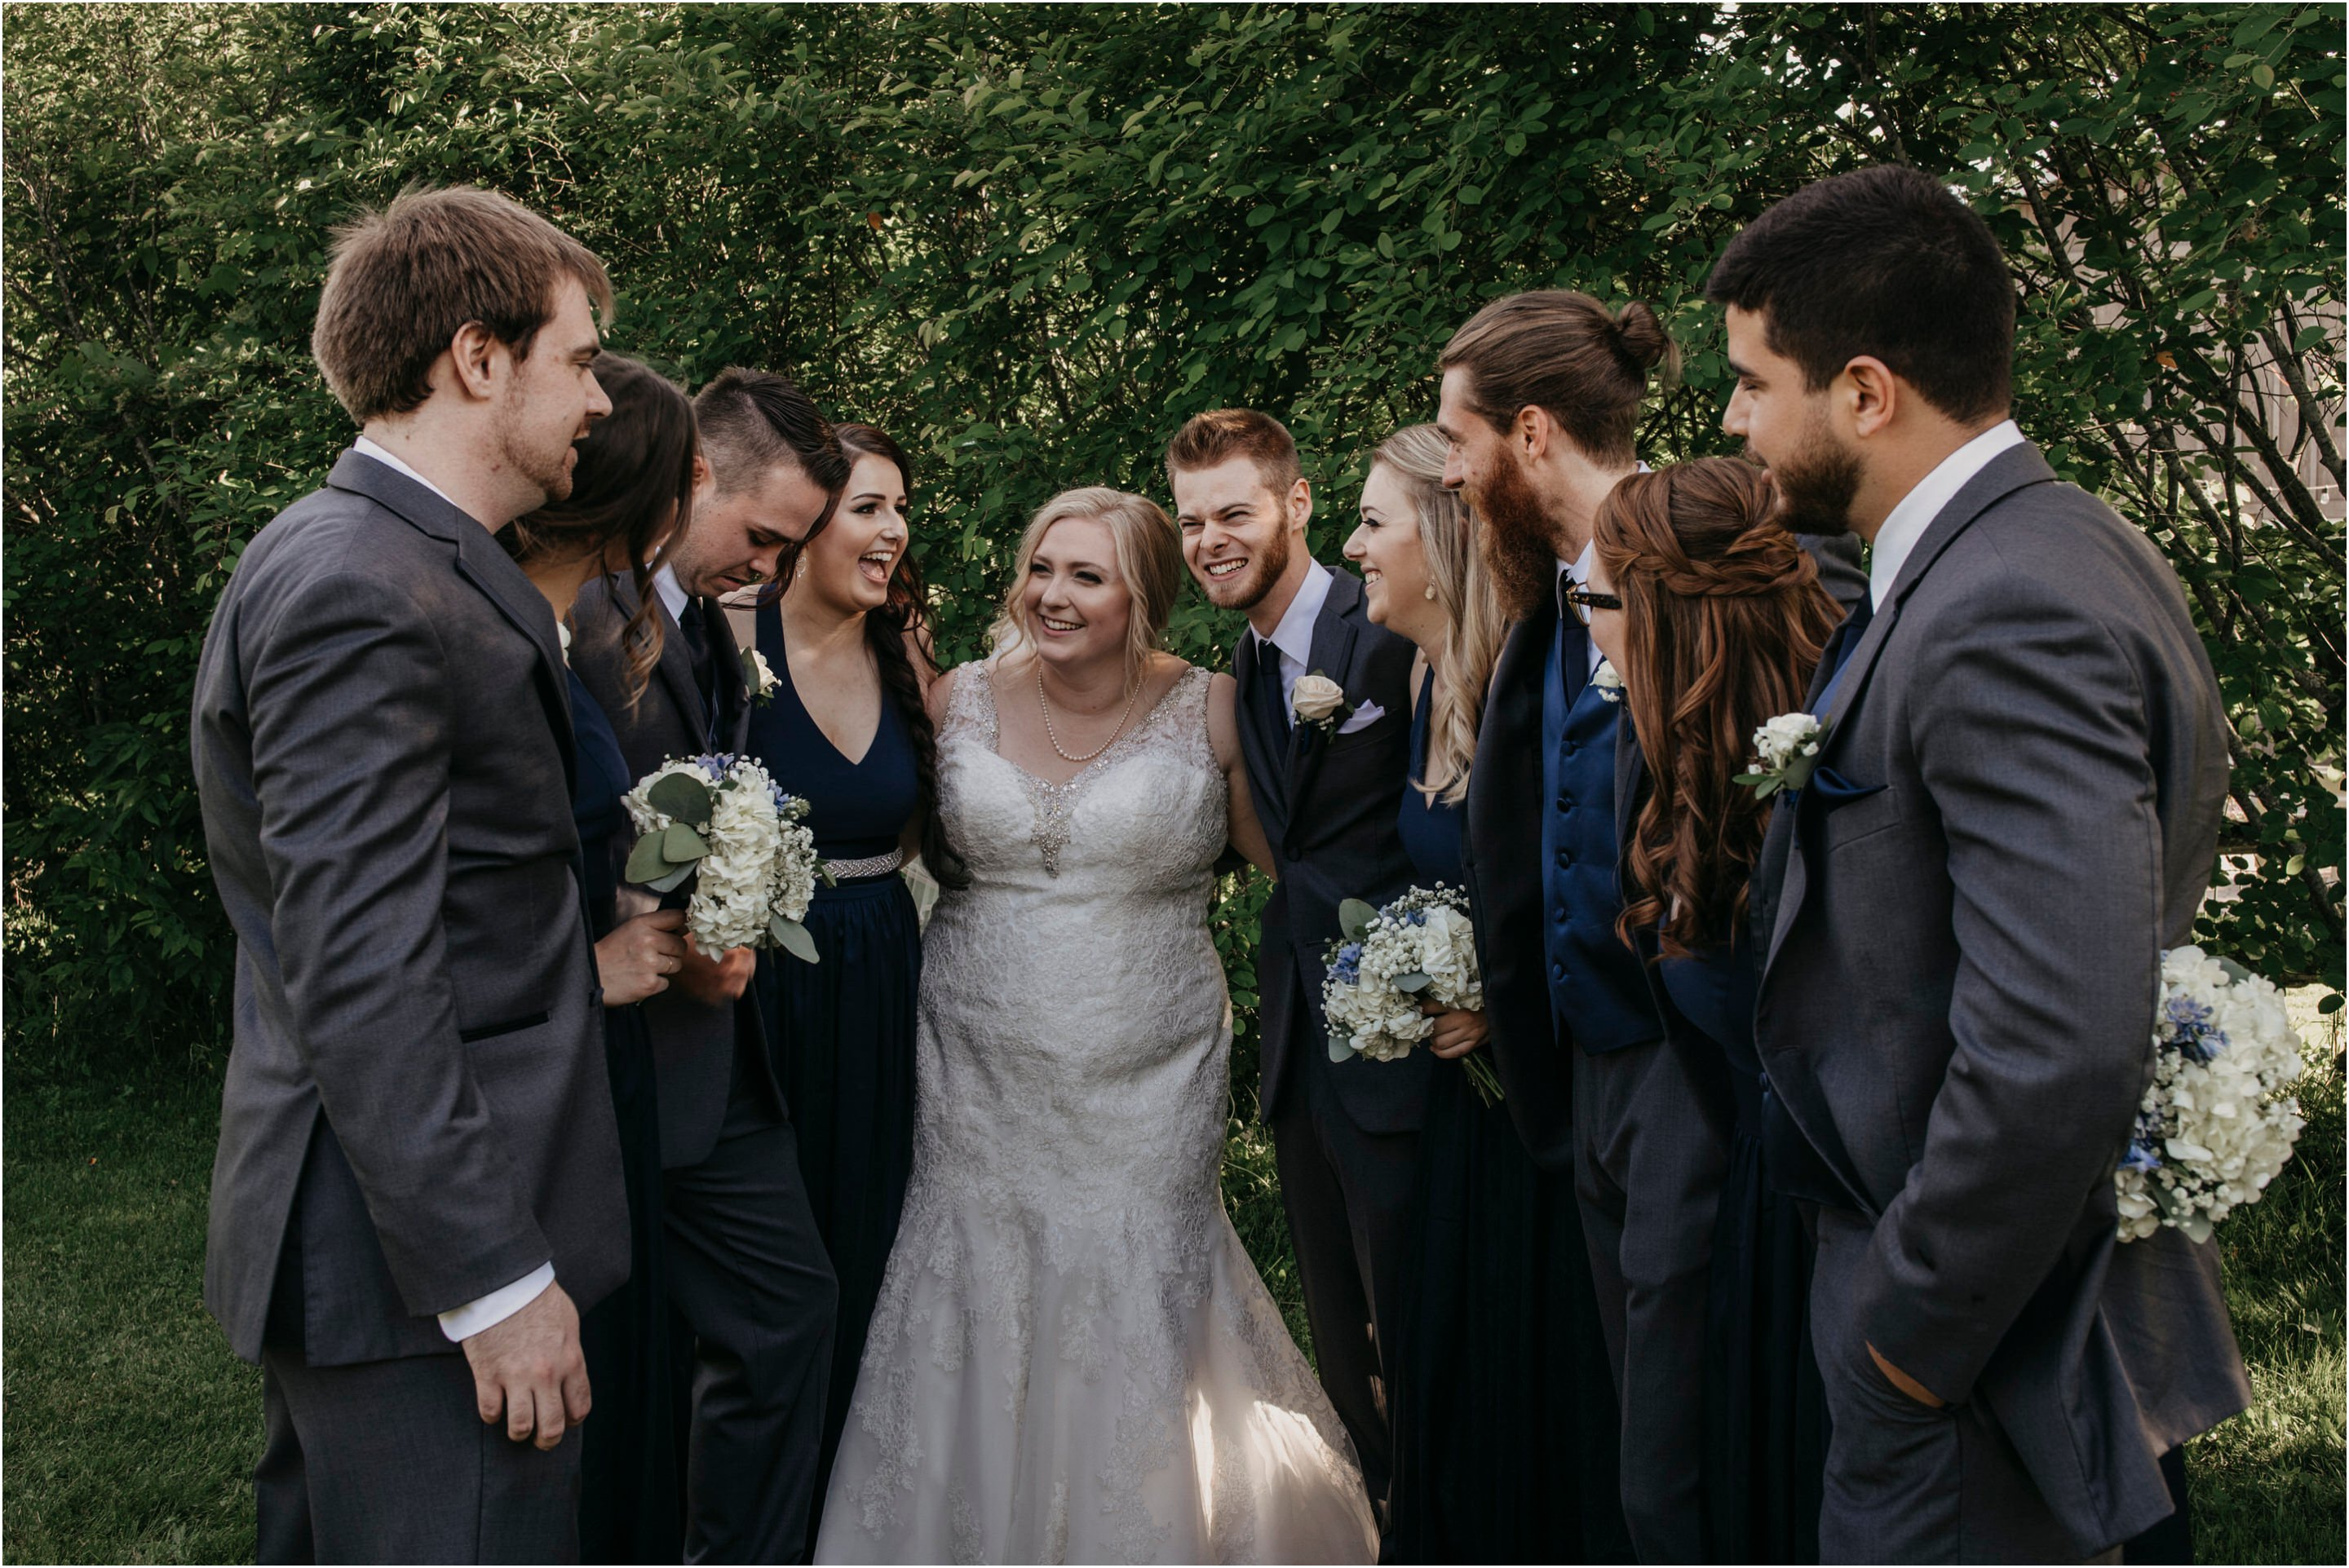 Strathmere Ottawa Wedding by Cindy Lottes Photography